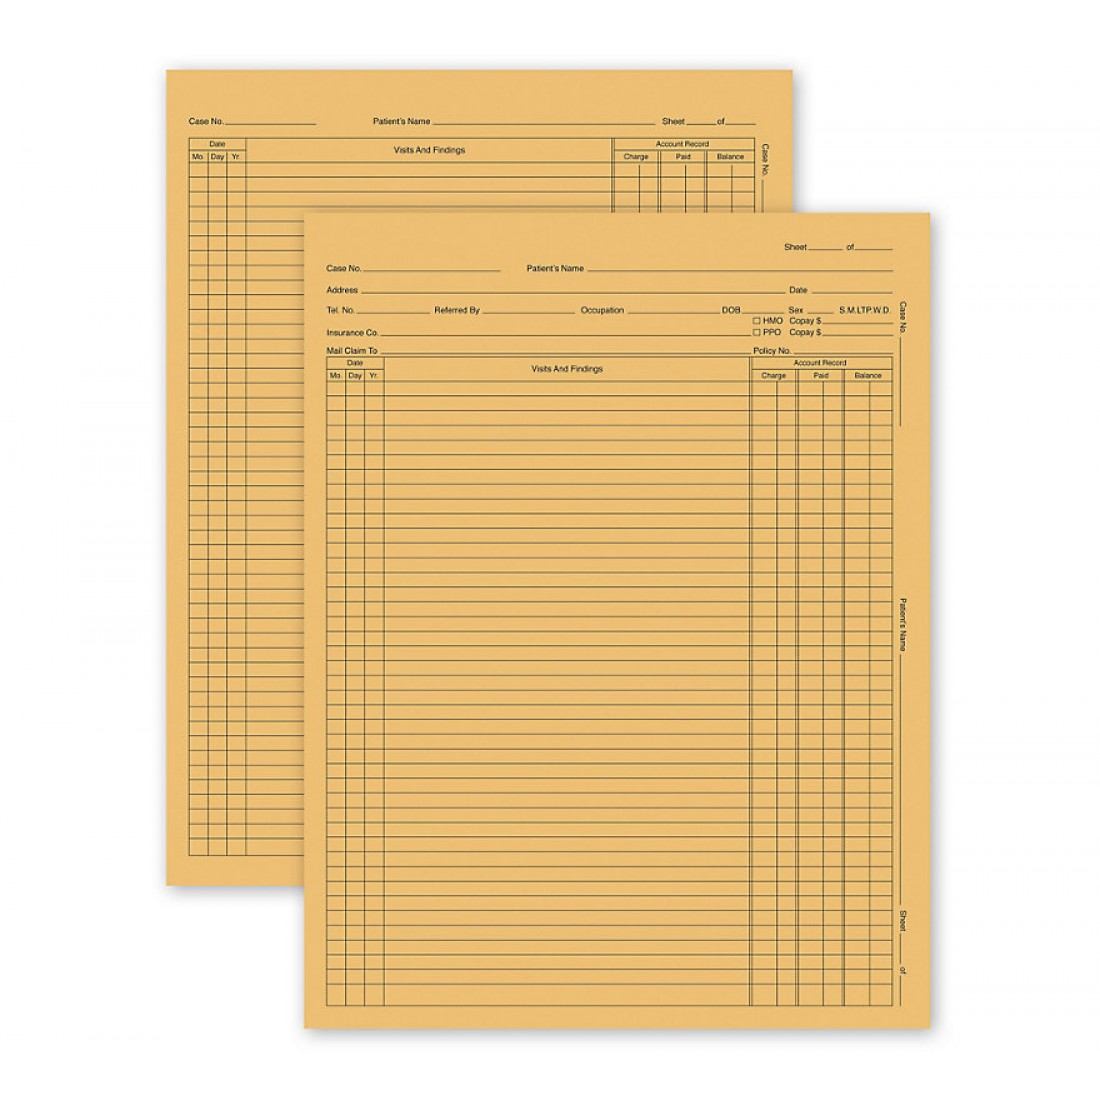 General Patient Exam Records Letter Style